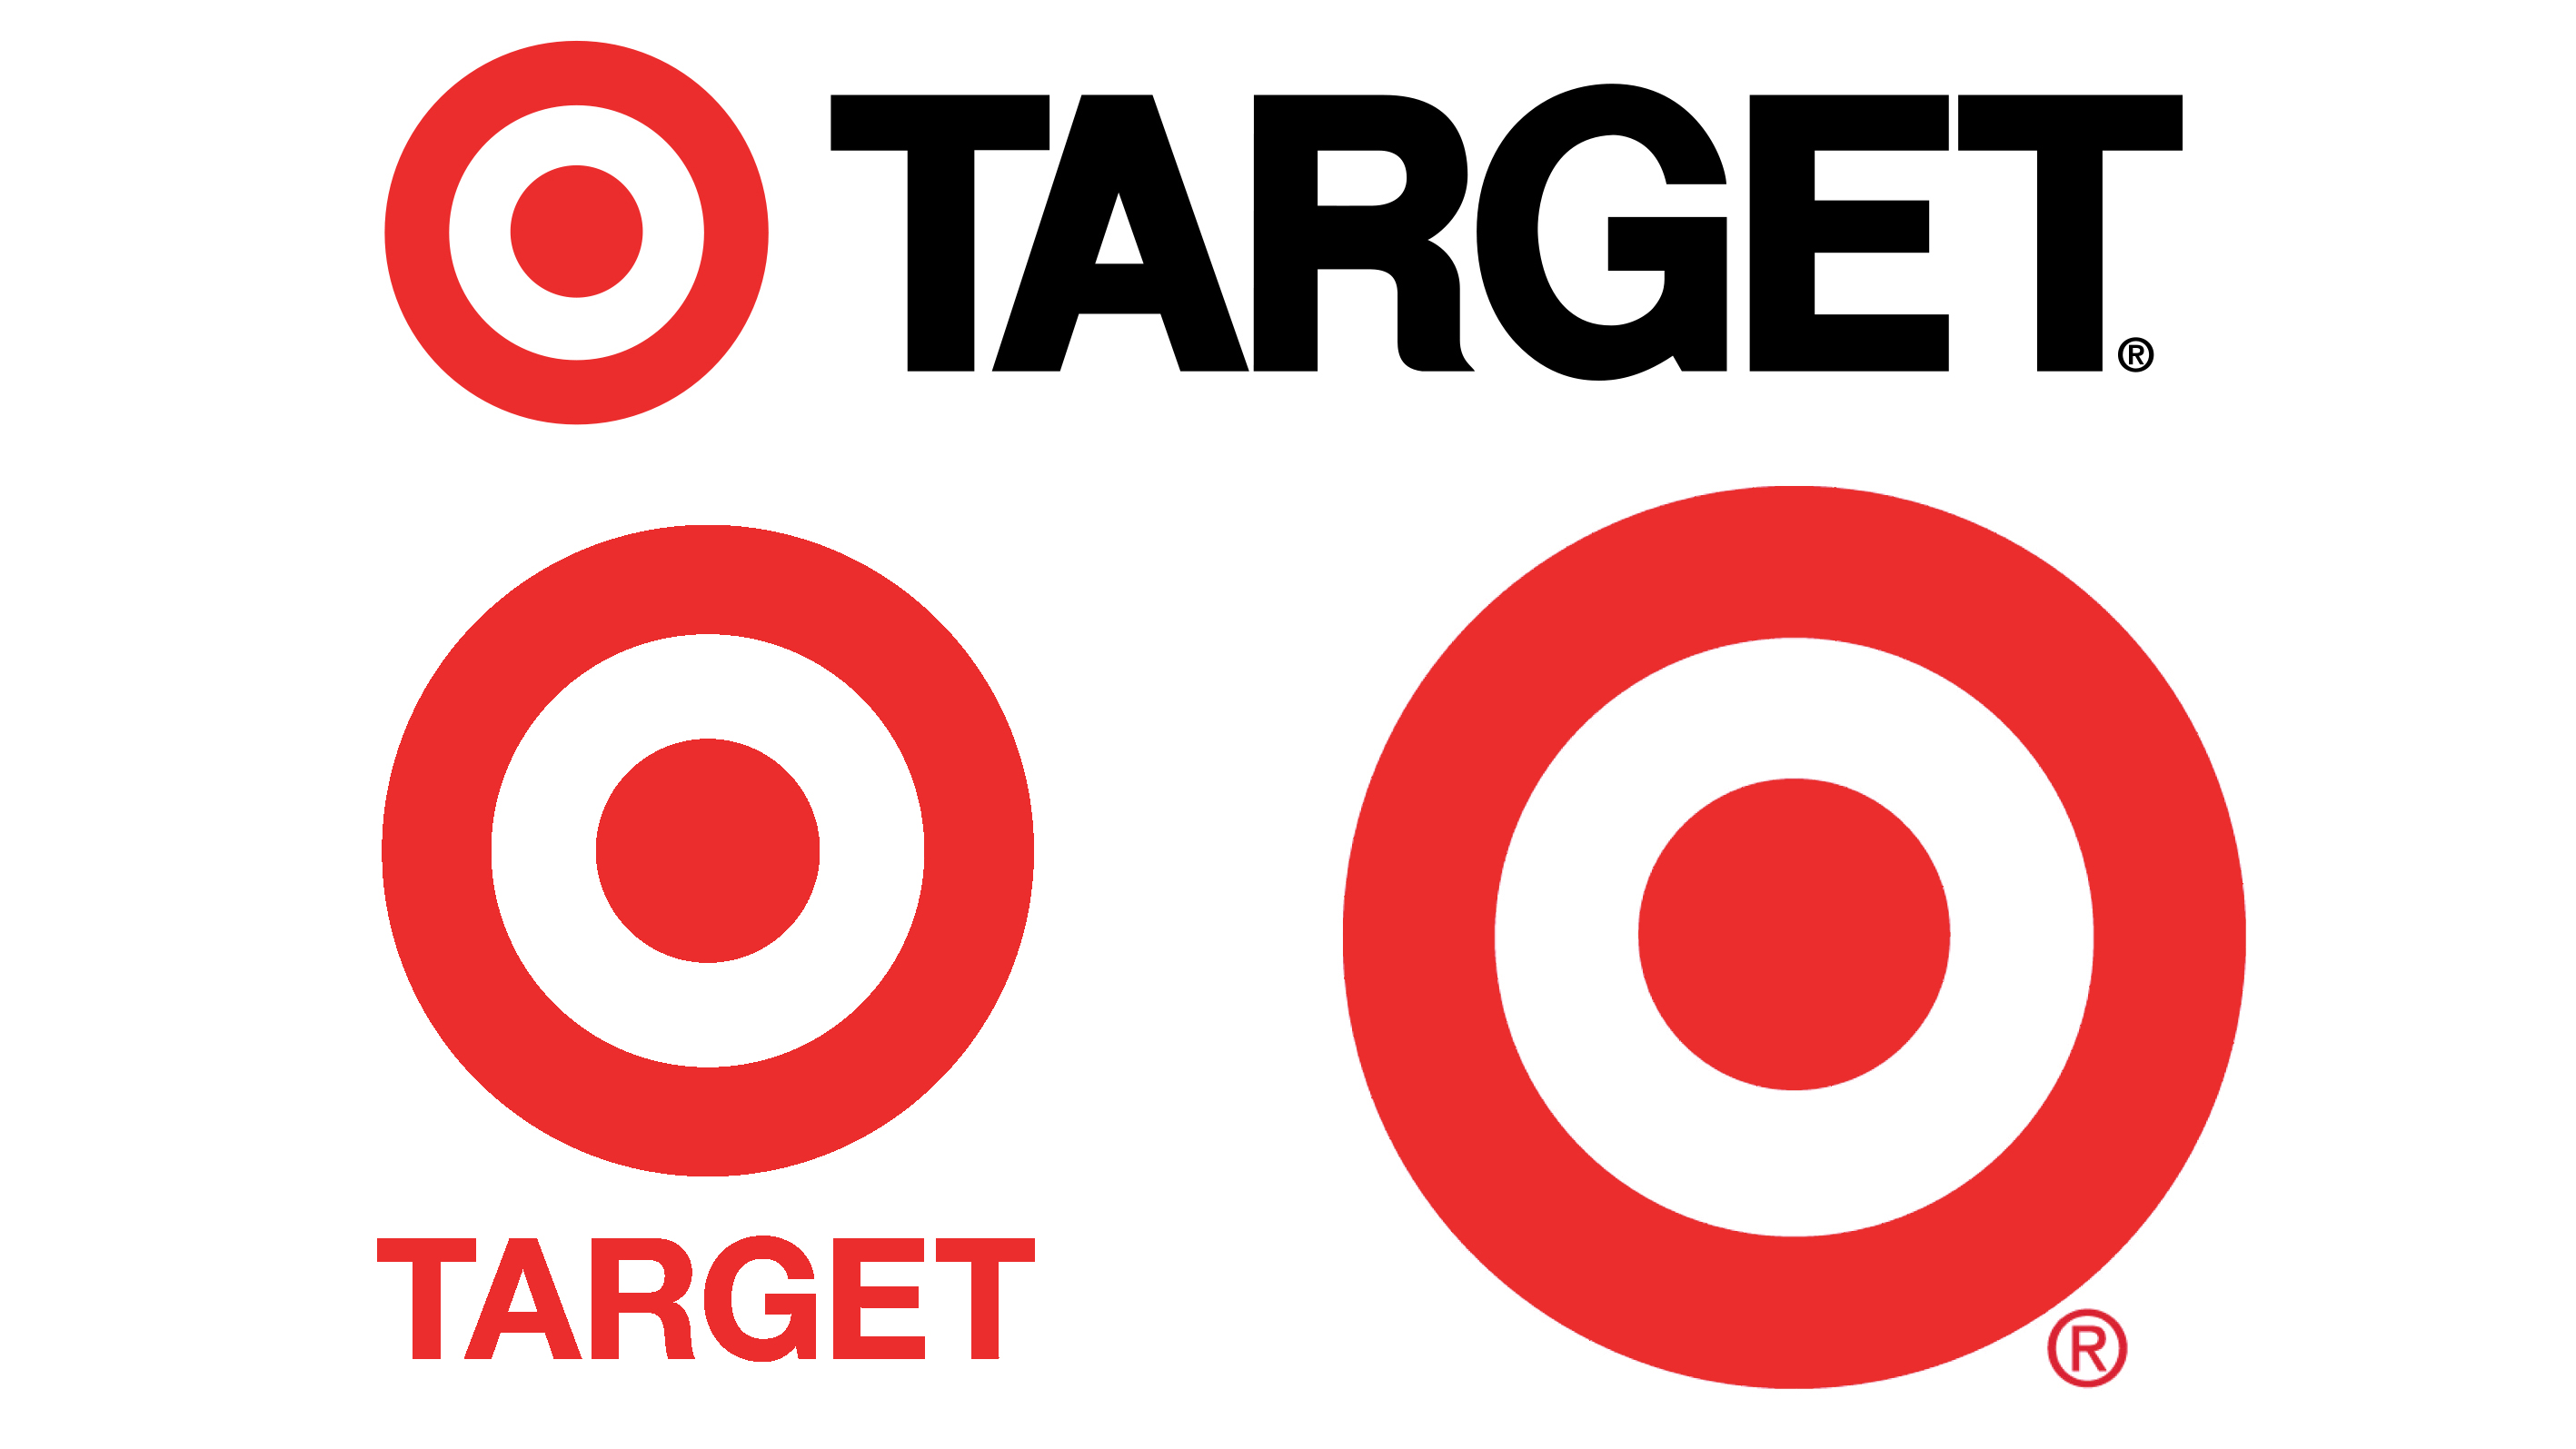 Target logo before and after